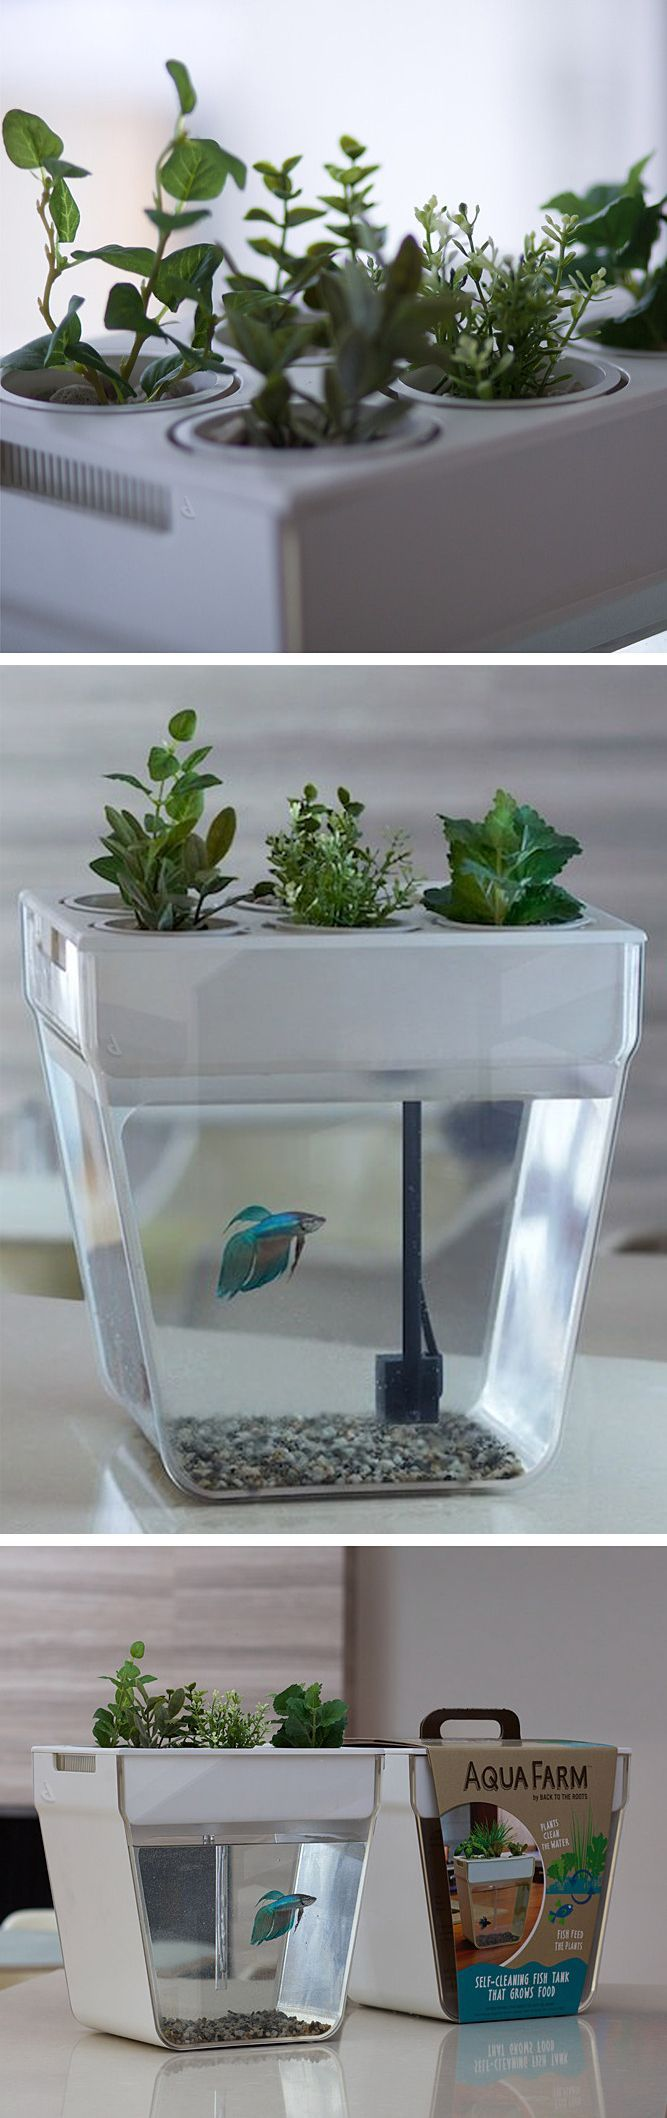 a self cleaning self feeding fish tank product design